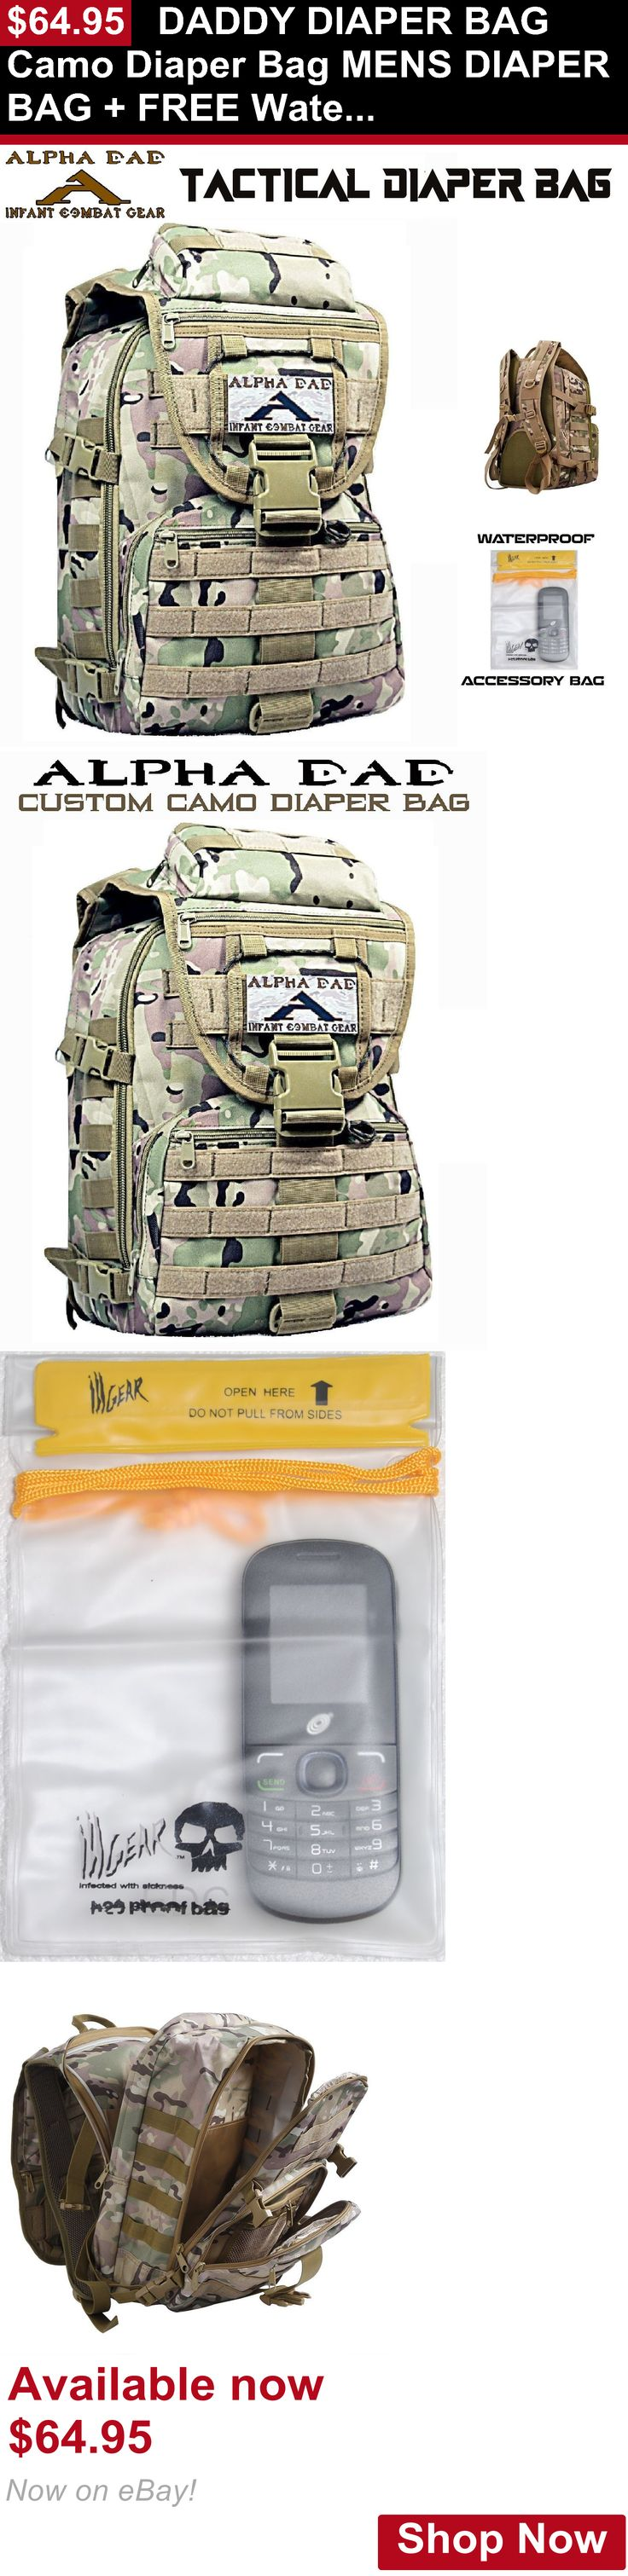 Other Baby: Daddy Diaper Bag Camo Diaper Bag Mens Diaper Bag + Free Waterproof Dry Goods Bag BUY IT NOW ONLY: $64.95